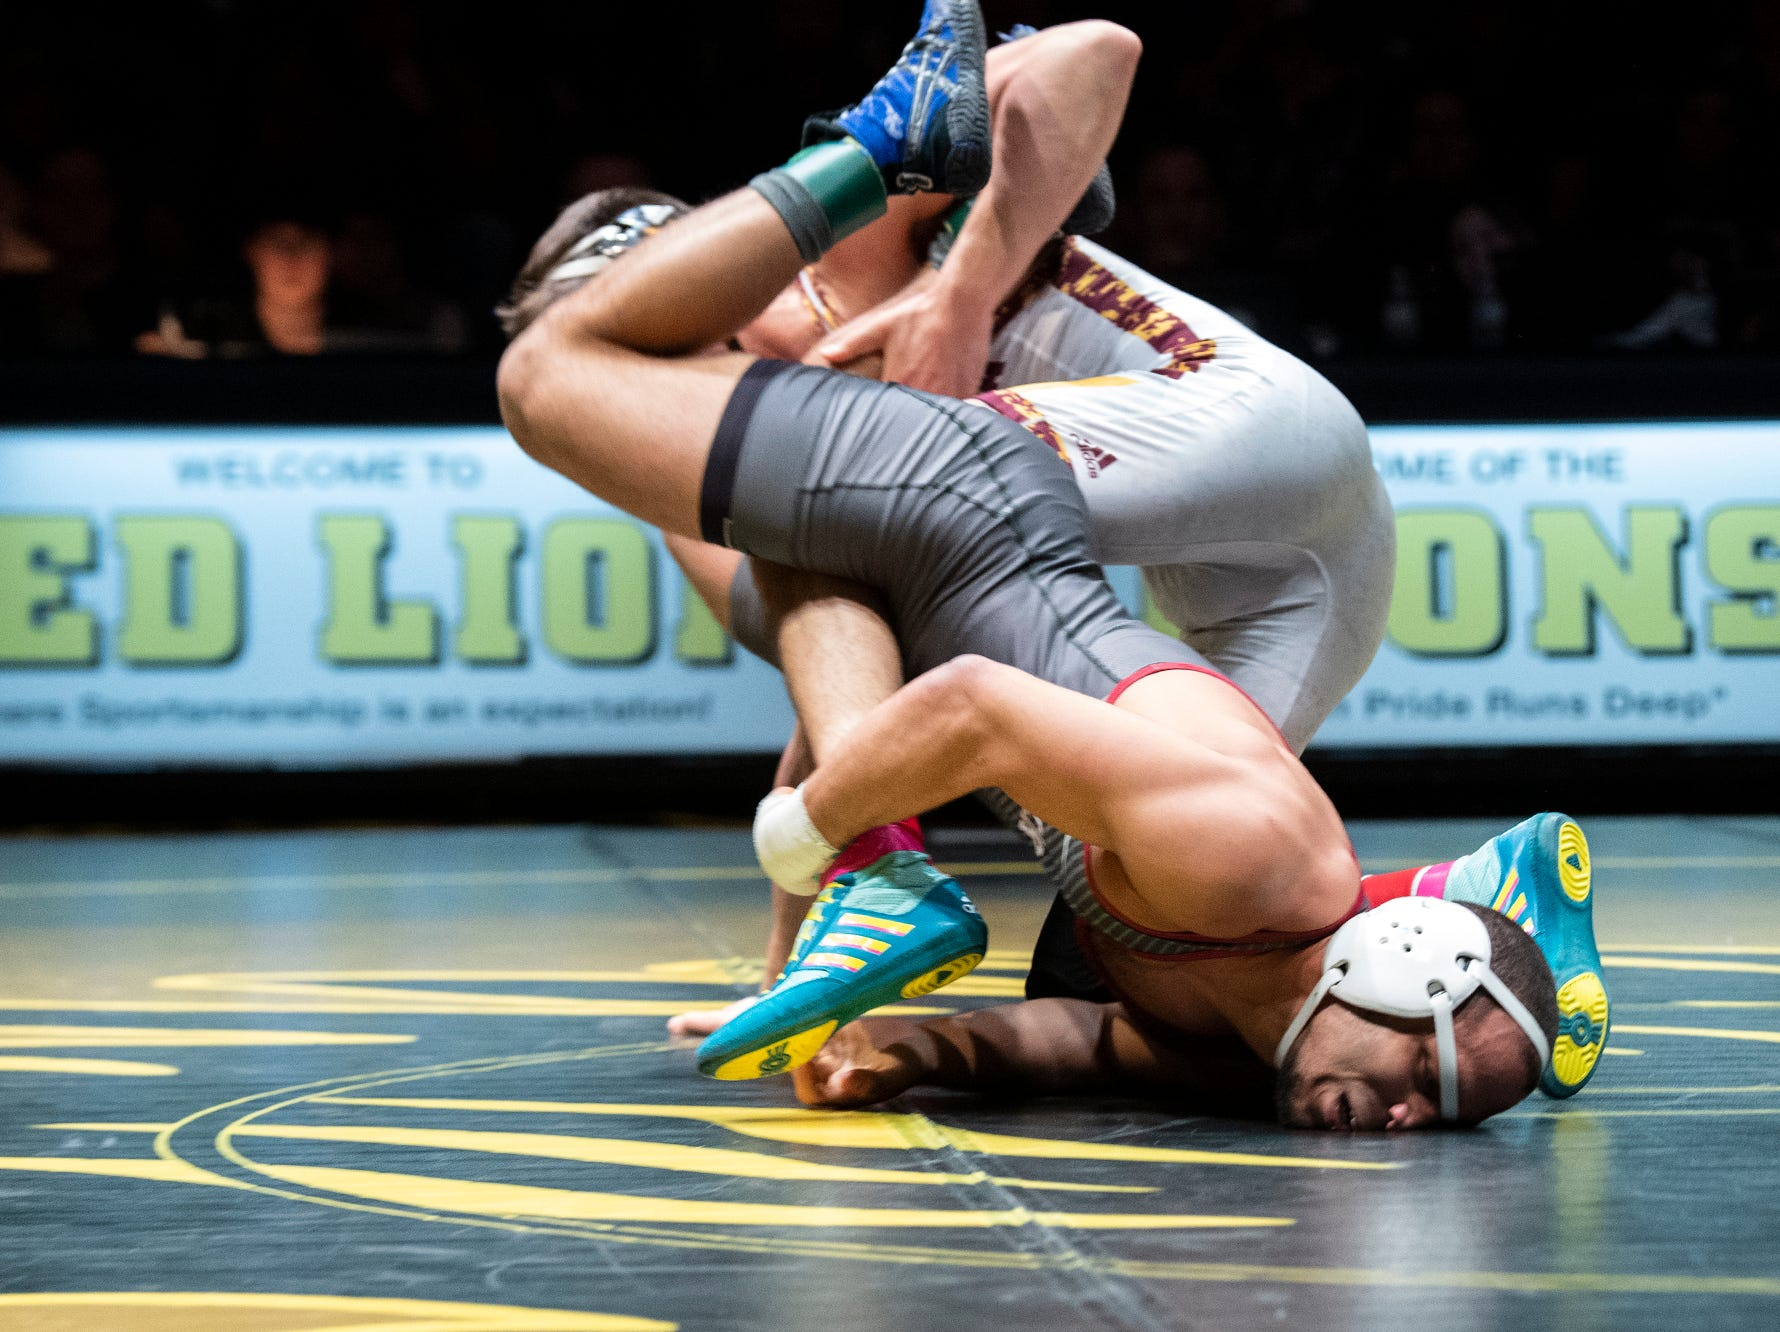 Lock Haven's Jonathan Ross, bottom, wrestles Arizona State's Josh Maruca during the 149-pound bout at Red Lion's Fitzkee Athletic Center on Friday, Jan. 25, 2019. Maruca beat Ross, 9-1. No. 22 Lock Haven upset No. 12 Arizona State, 23-14, in the first ever 'Rumble in the Jungle.'